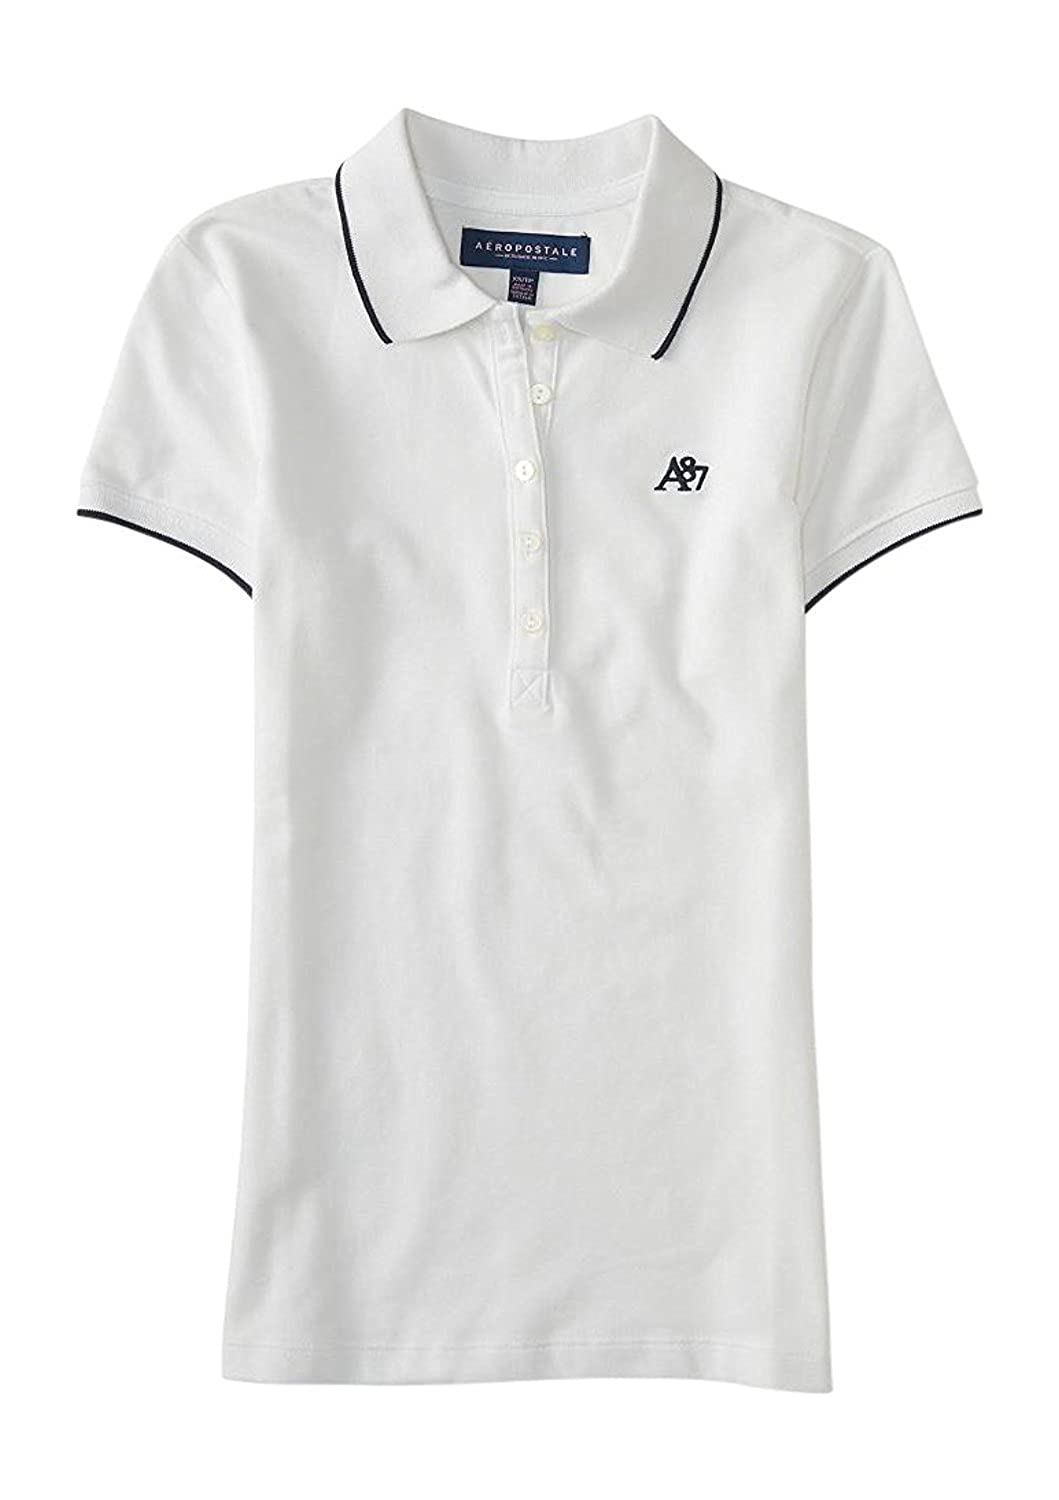 Aeropostale Women's Line Tipped Polo Shirt With A87 Logo Style 9776